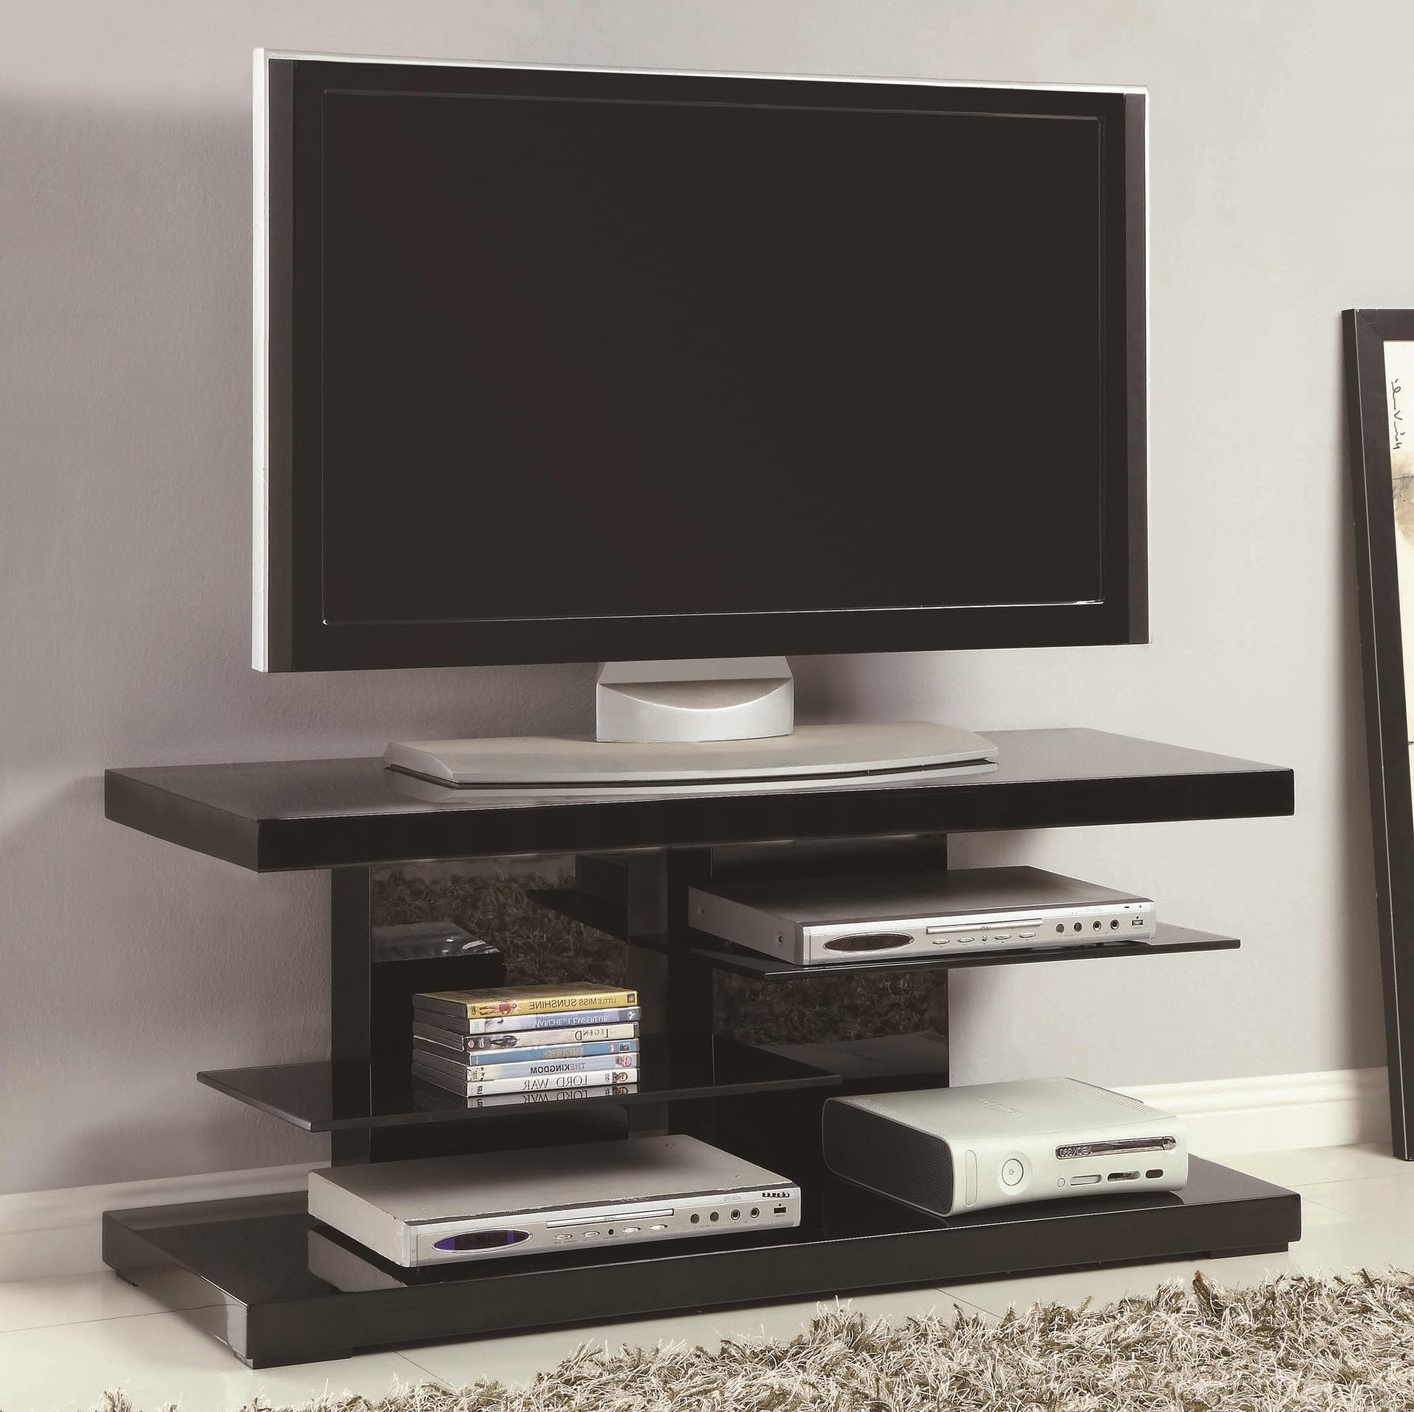 Black Glass Tv Stand – Steal A Sofa Furniture Outlet Los With Regard To Modern Black Floor Glass Tv Stands With Mount (View 1 of 20)